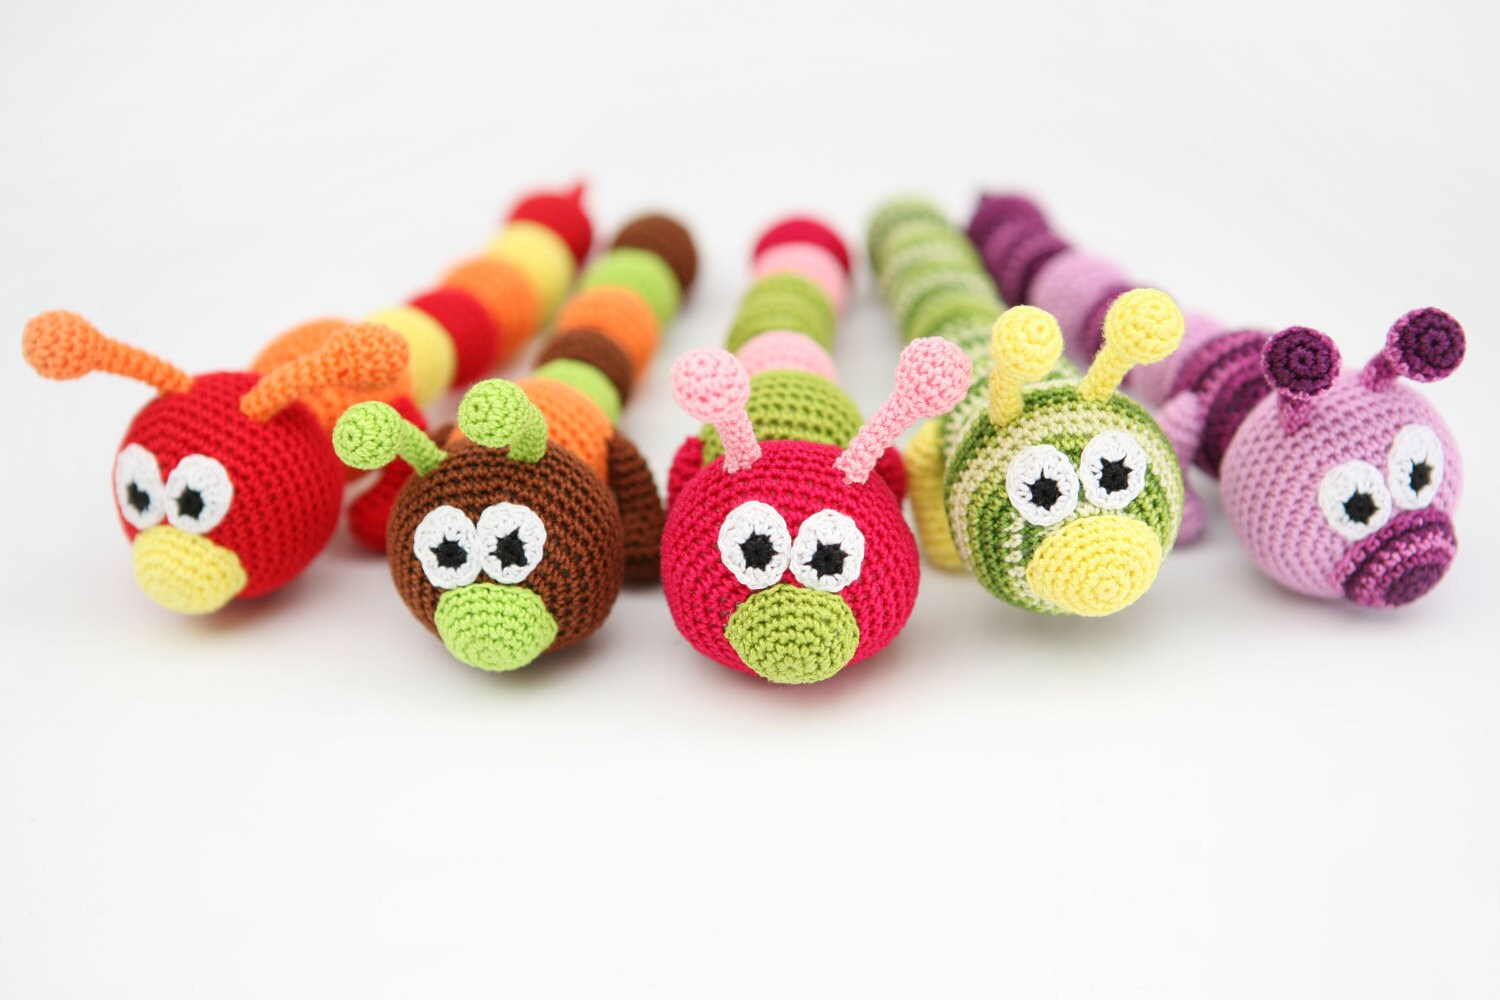 Baby Toys Sale Sale Crochet Baby Toy Teething Baby Toy Grasping Teething Toys